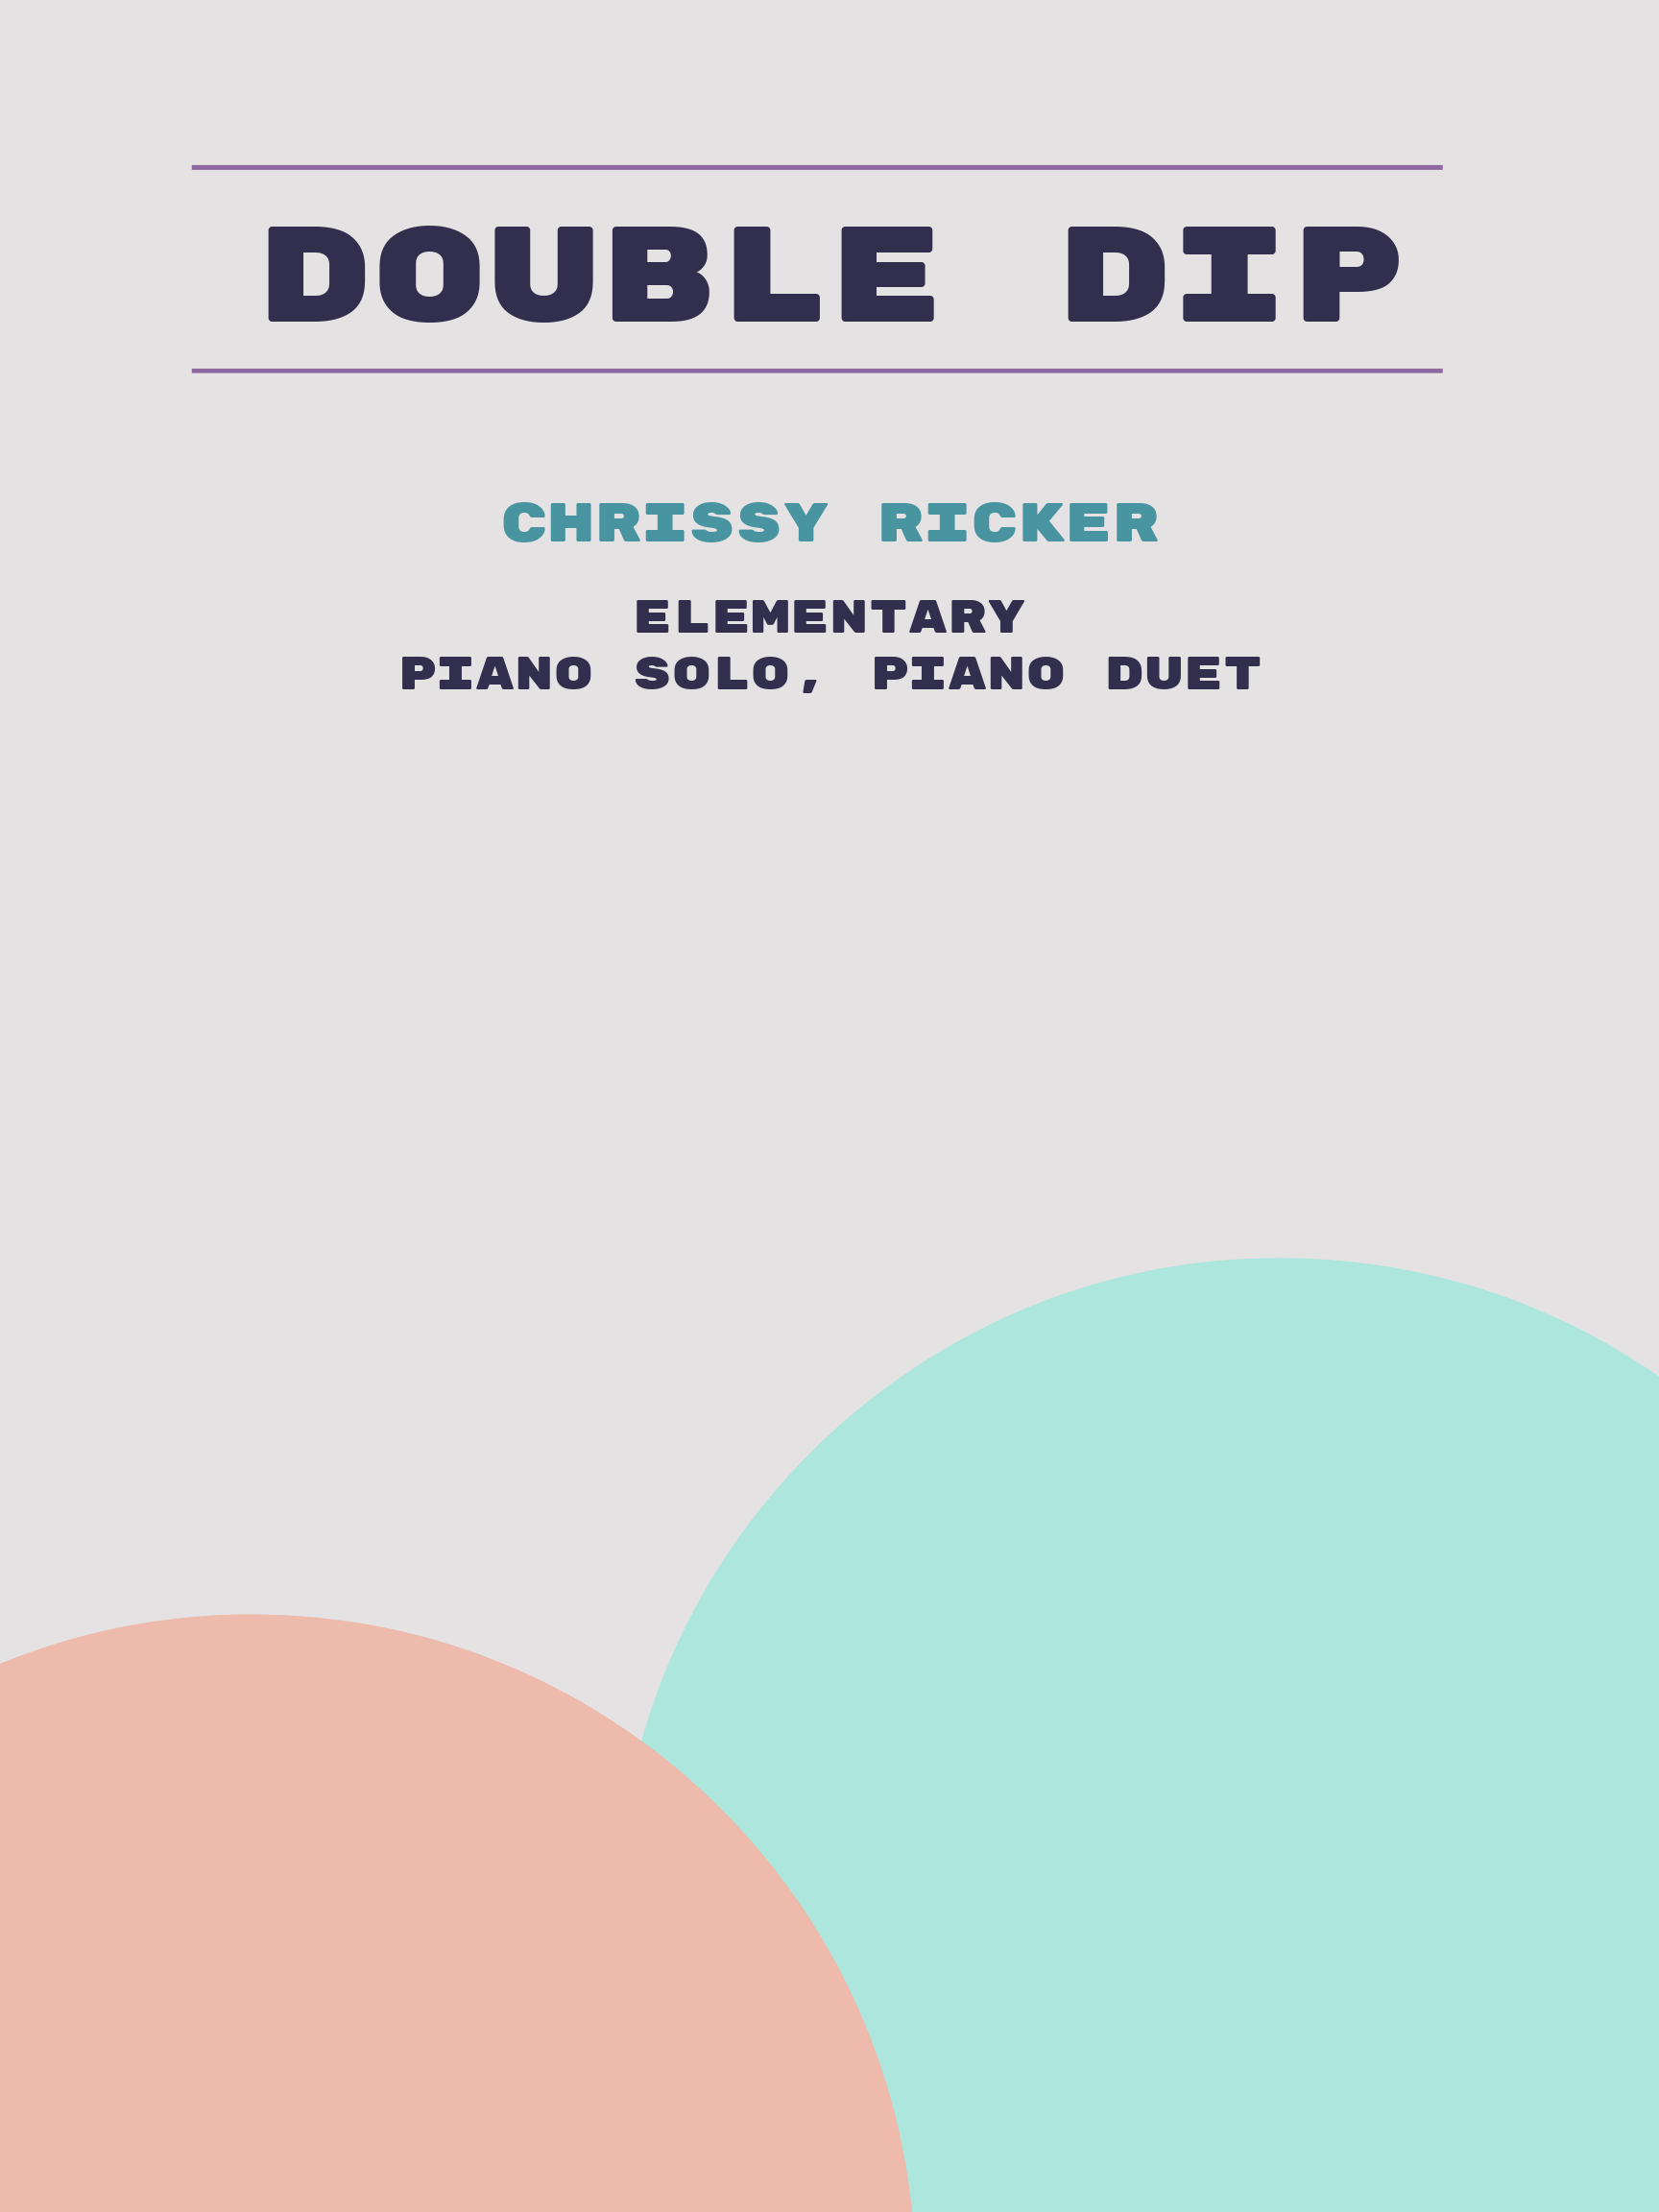 Double Dip by Chrissy Ricker